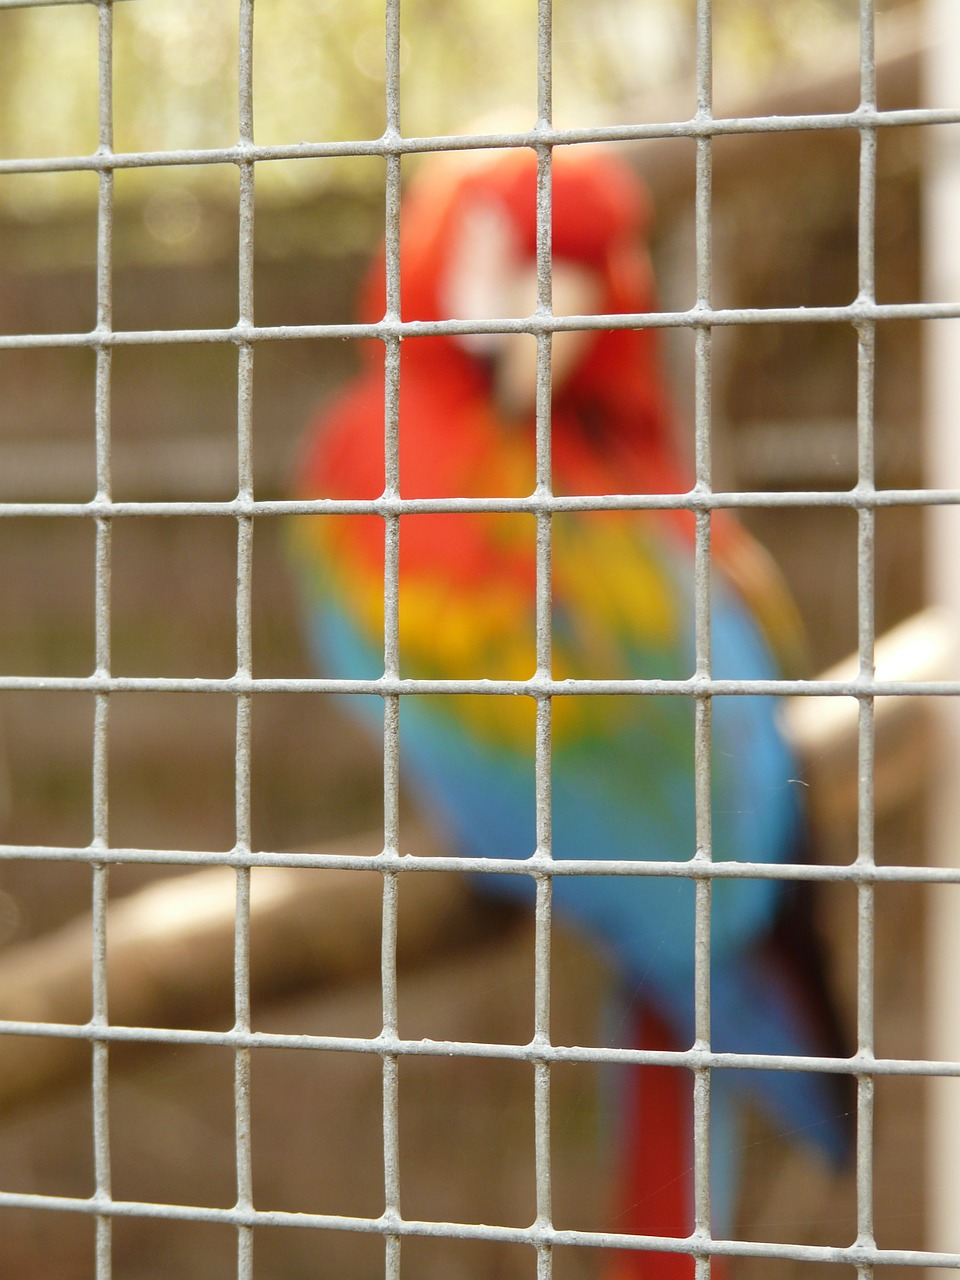 grid,imprisoned,parrot,prison,animal,bird,cage,free pictures, free photos, free images, royalty free, free illustrations, public domain